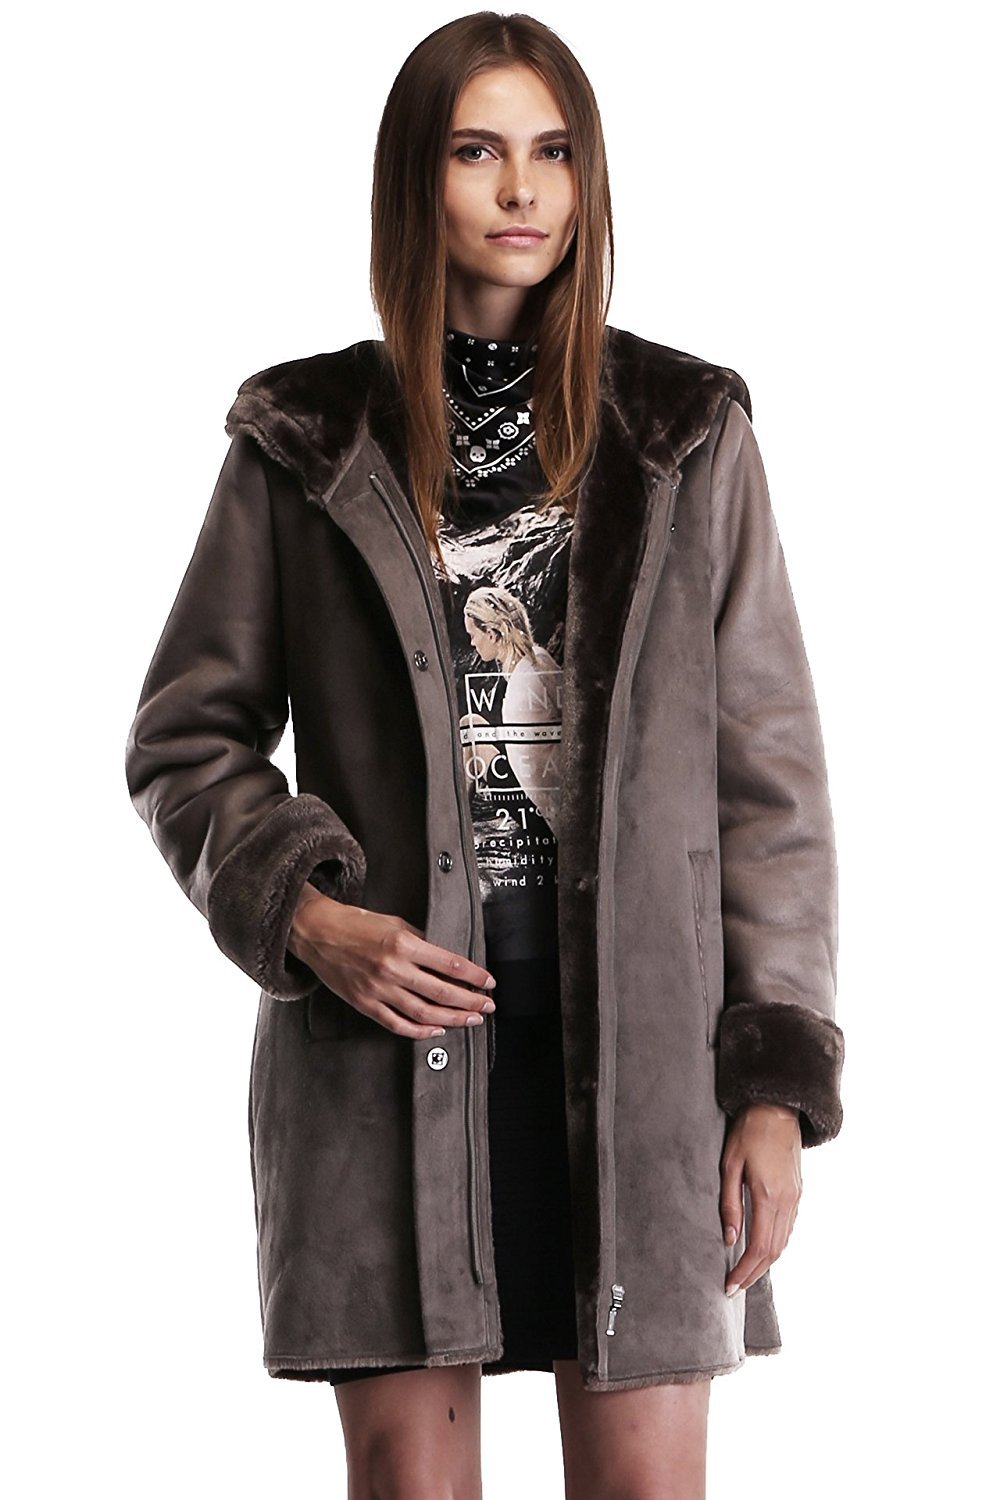 Ovonzo Women's Faux Suede Leather Zipper Snap Button Coat with Hood Size XL